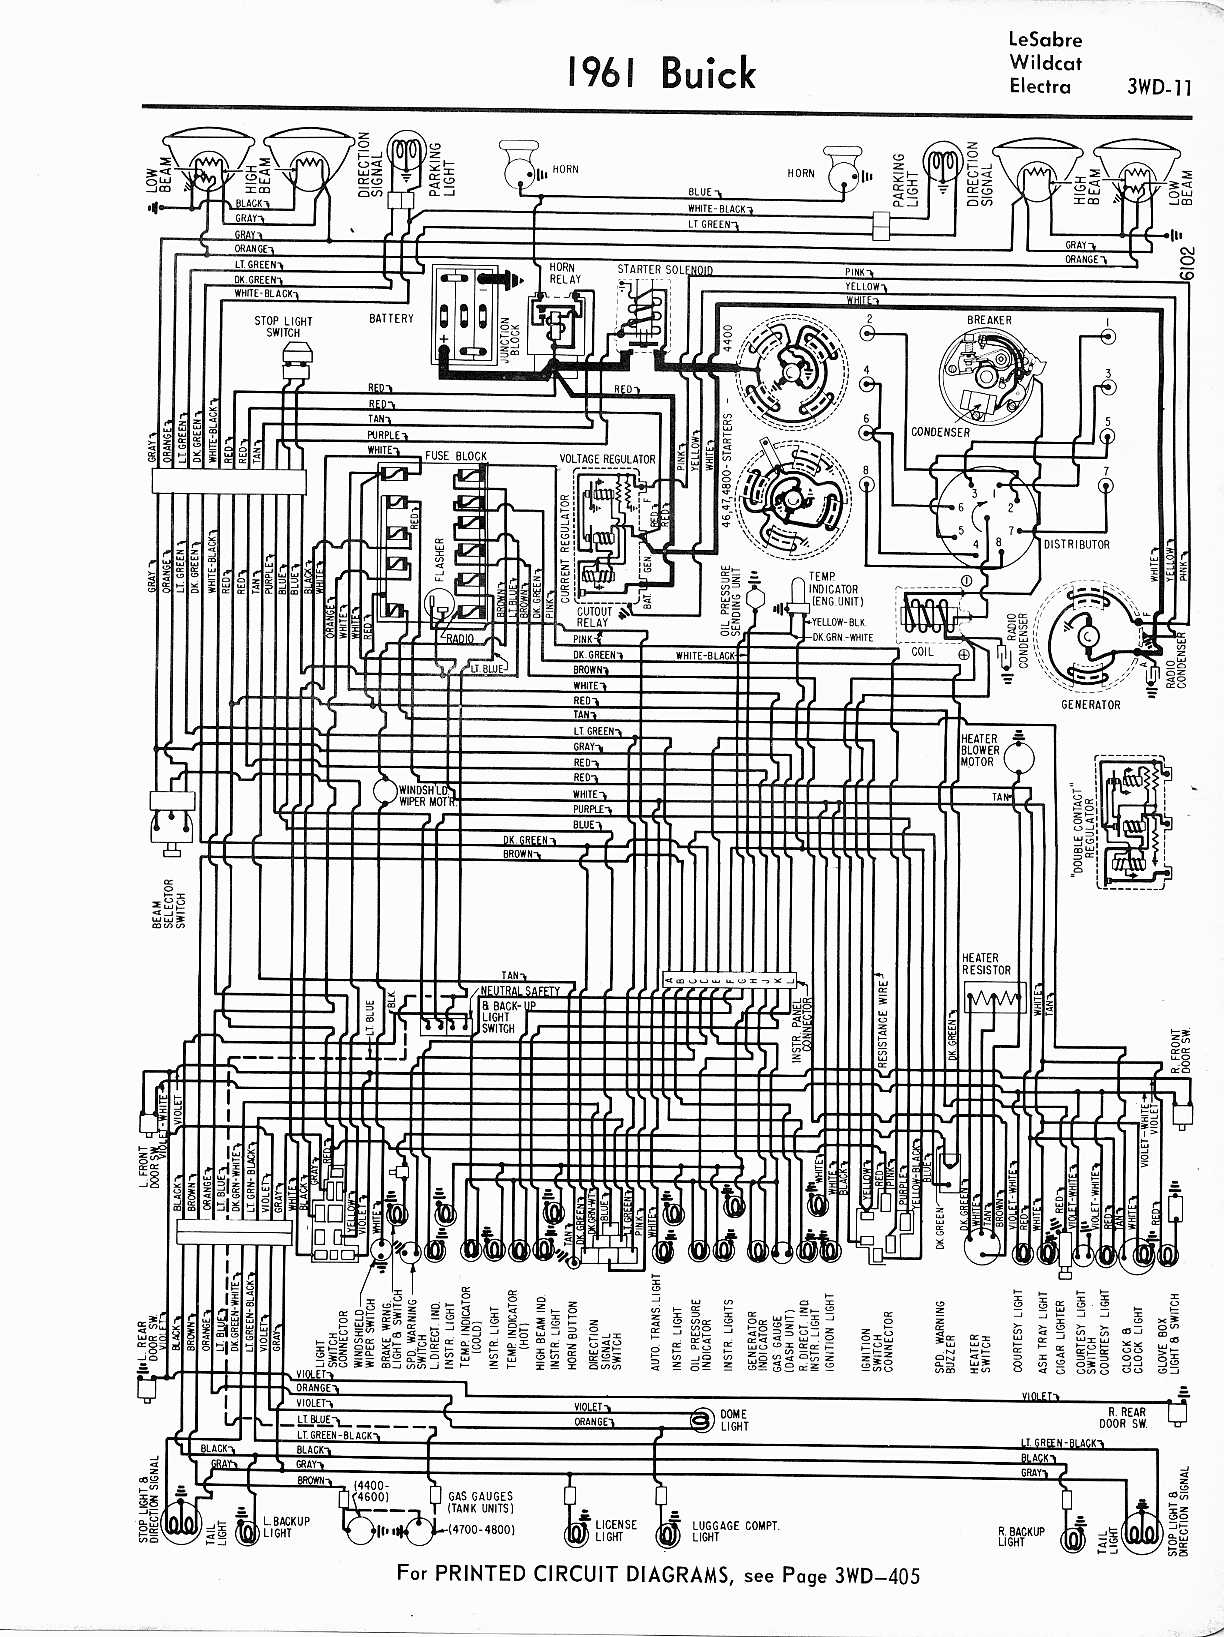 1999 Buick Regal Turn Signal Wiring Diagram Wire Library1961 Lesabre Wildcat Electra